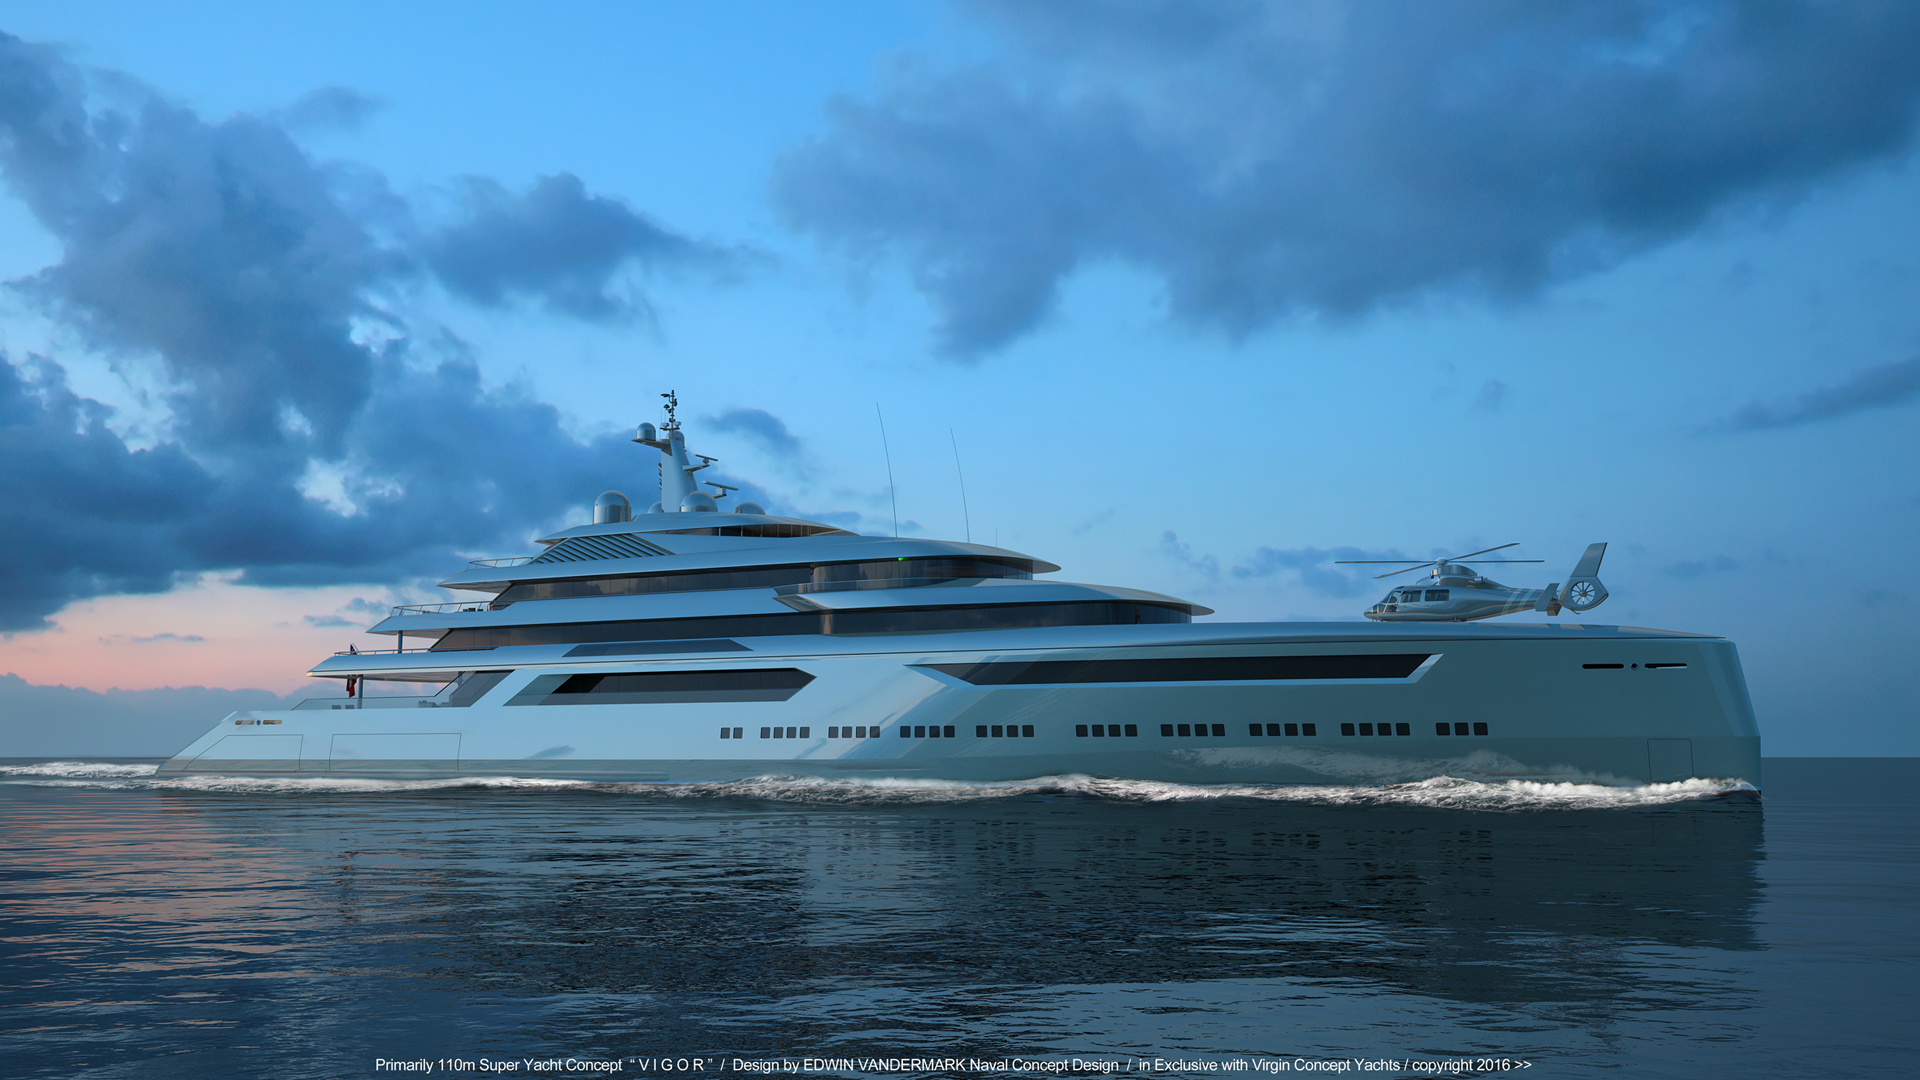 110m explorer yacht concept from Virgin Concept Yachts ...